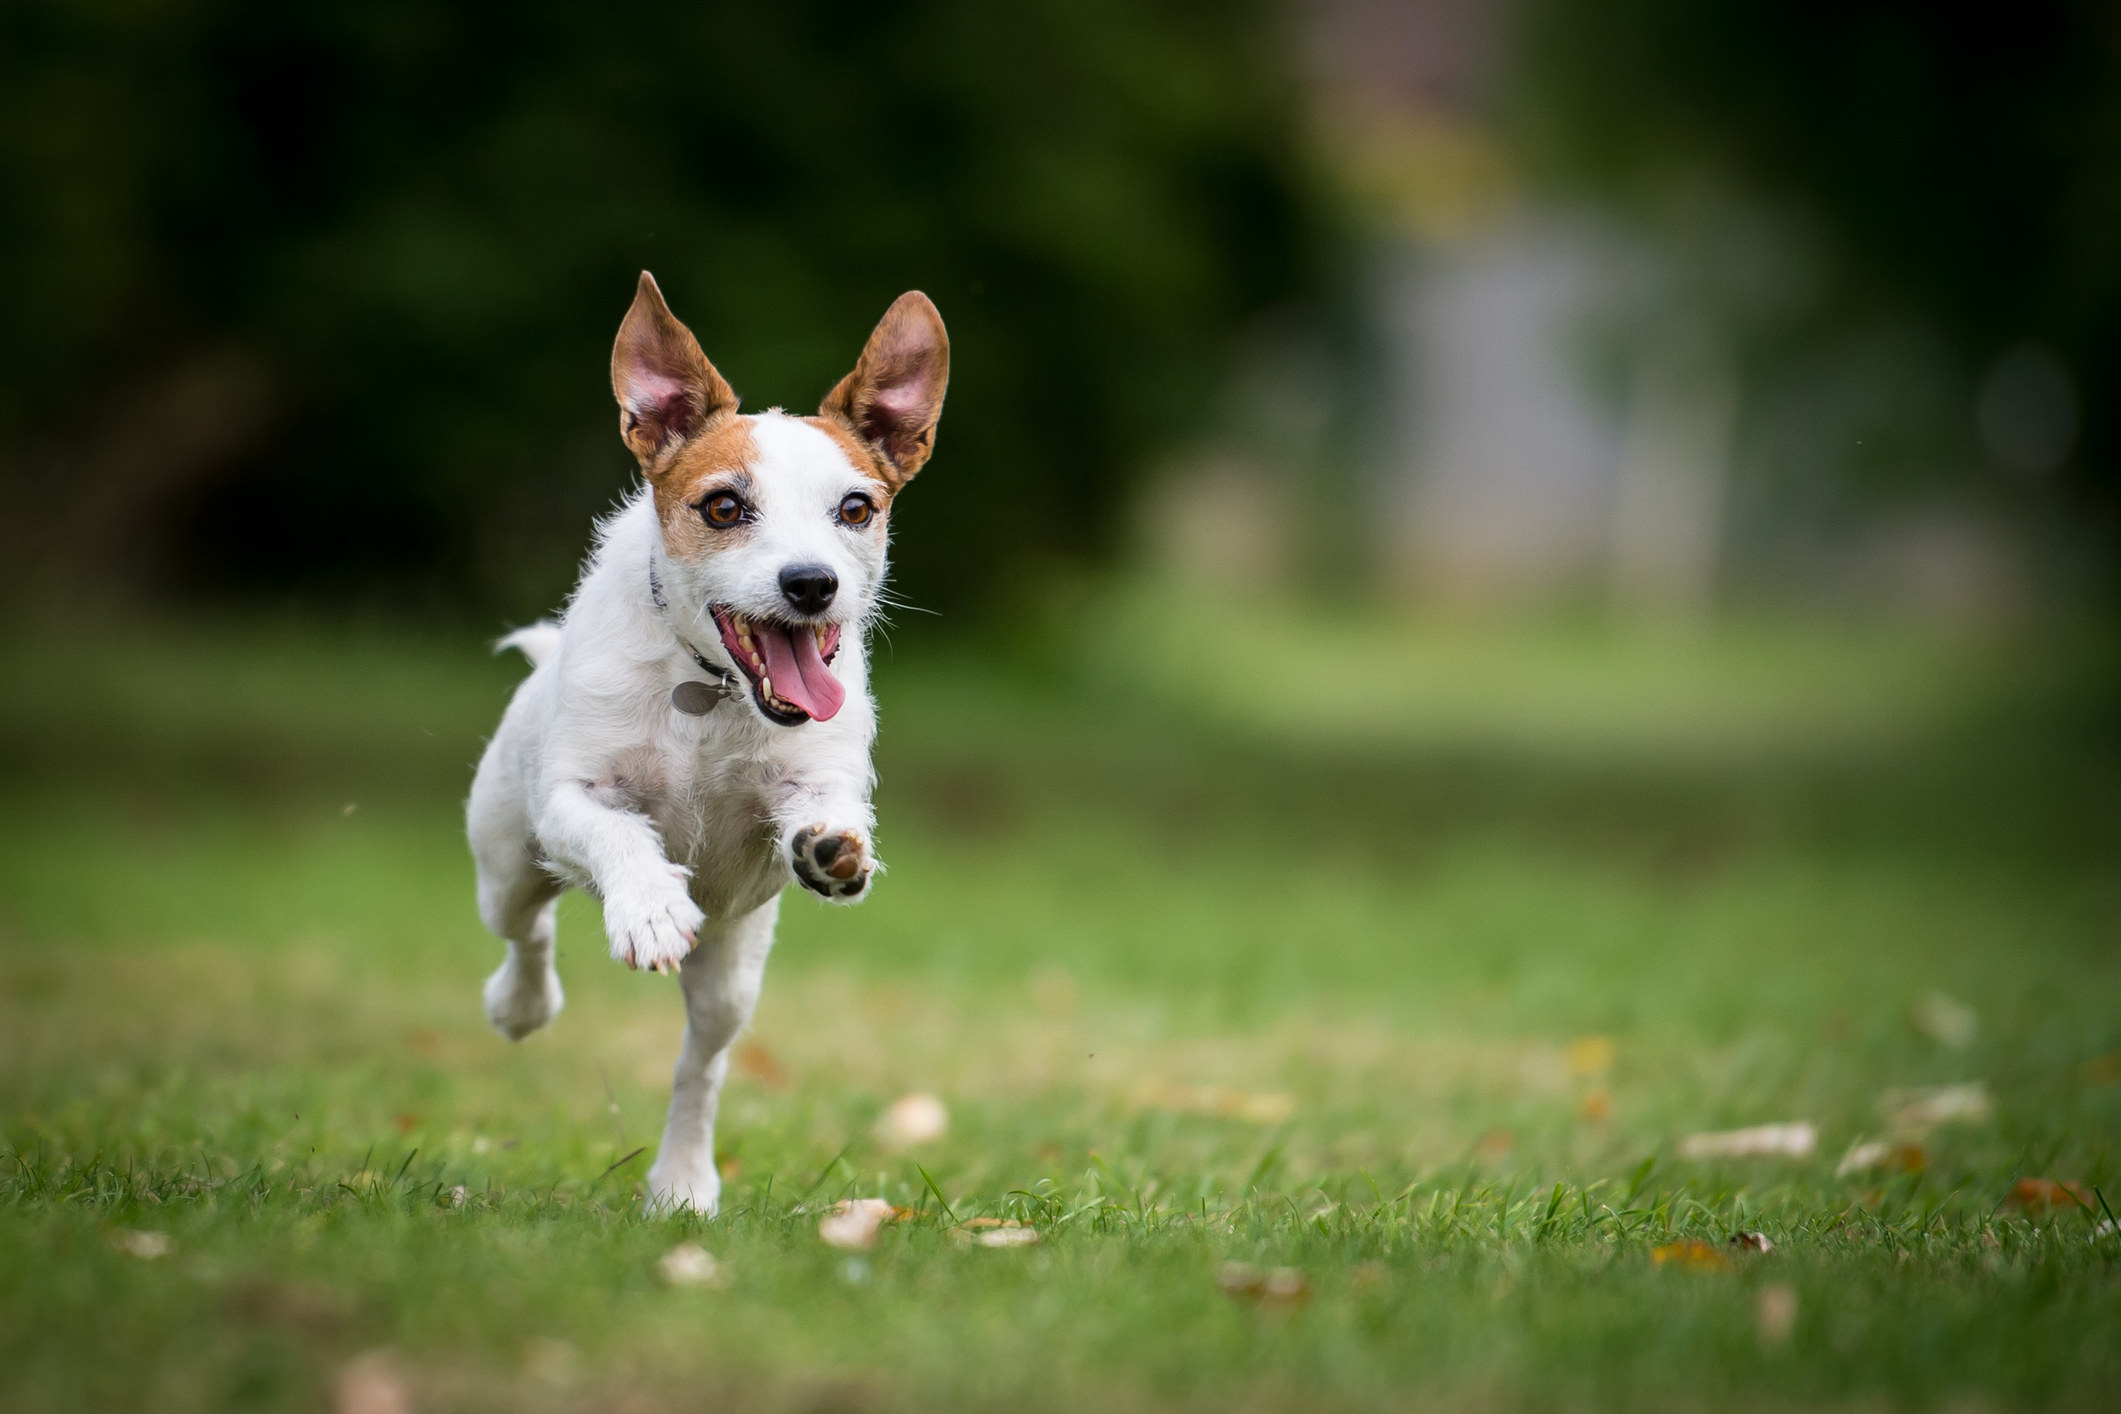 Jack Russell running in a park